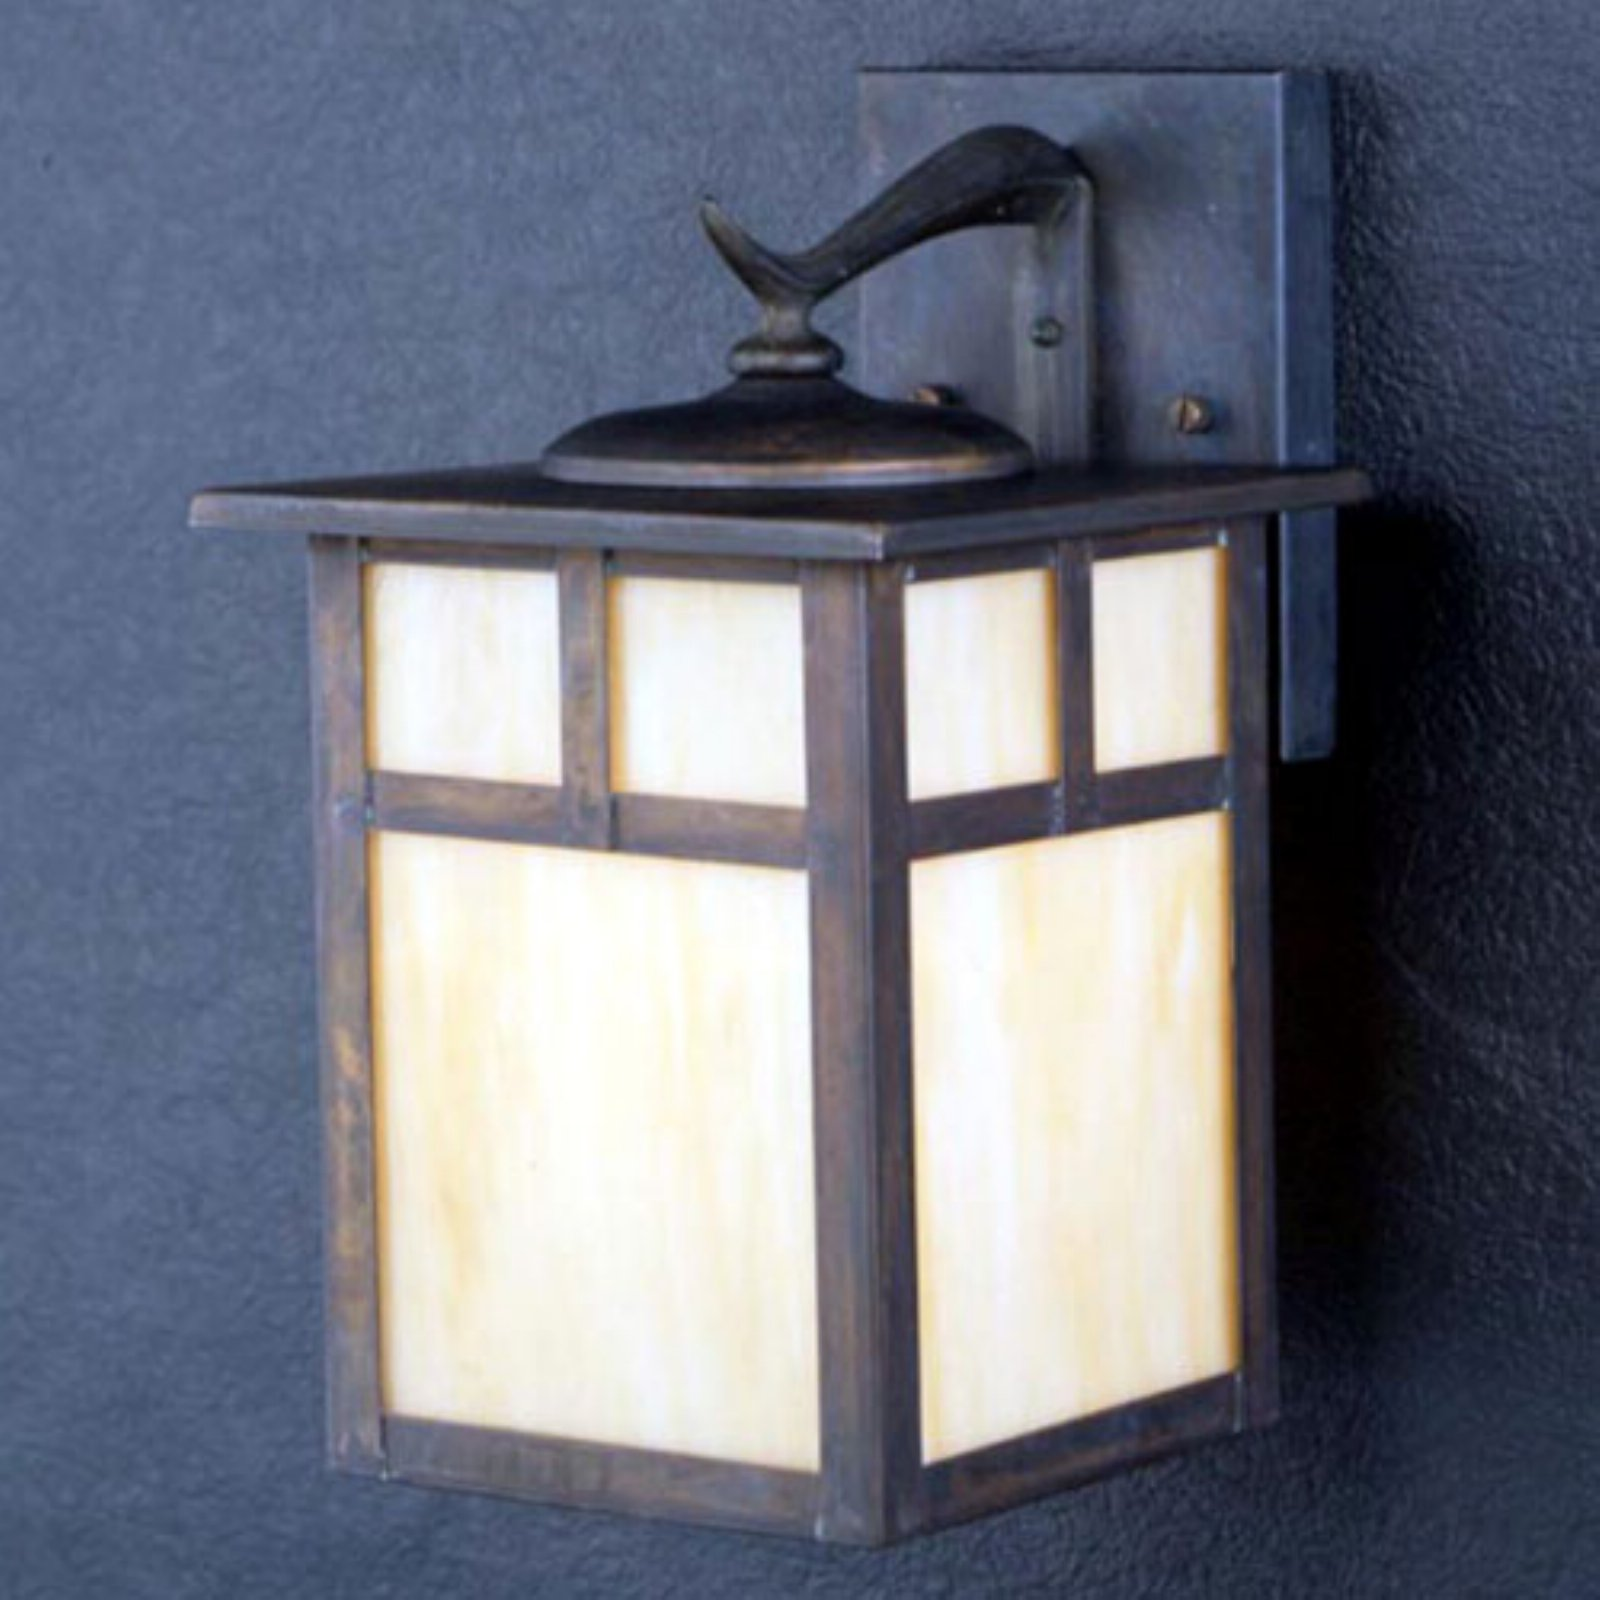 Kichler Alameda Outdoor Wall Lantern - 11.5H in. Canyon View